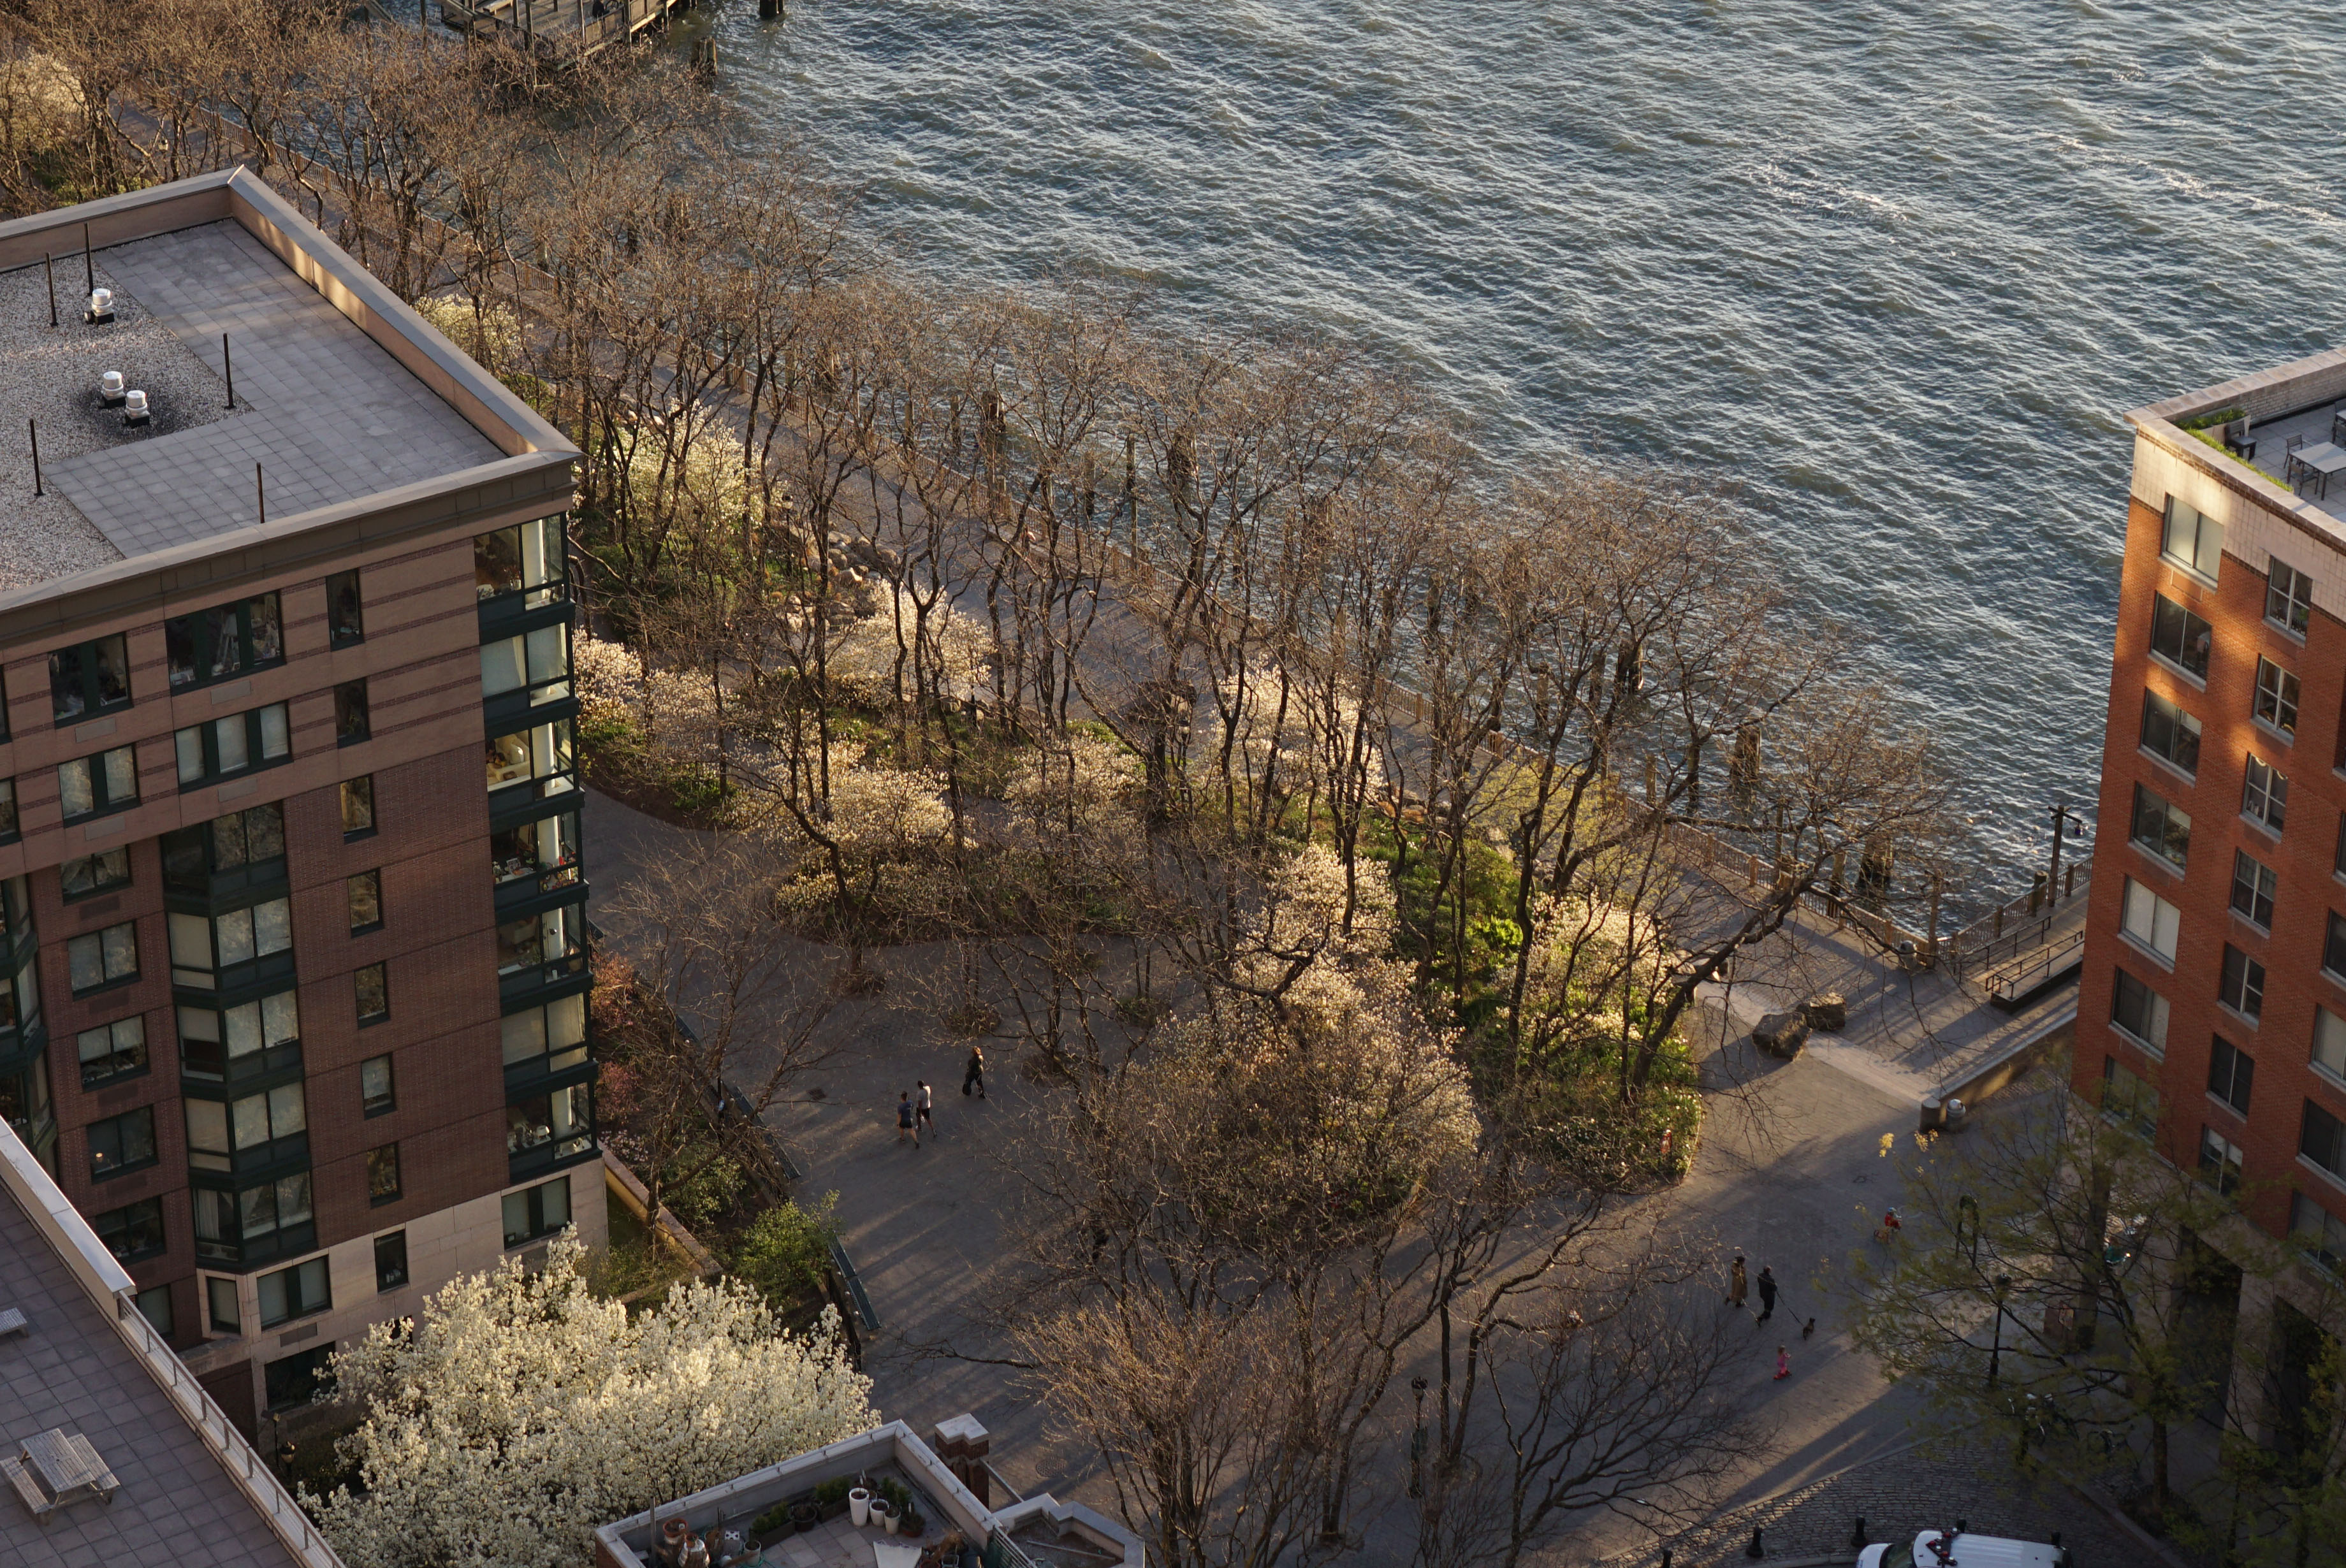 Flowering trees in South Cove Battery Park